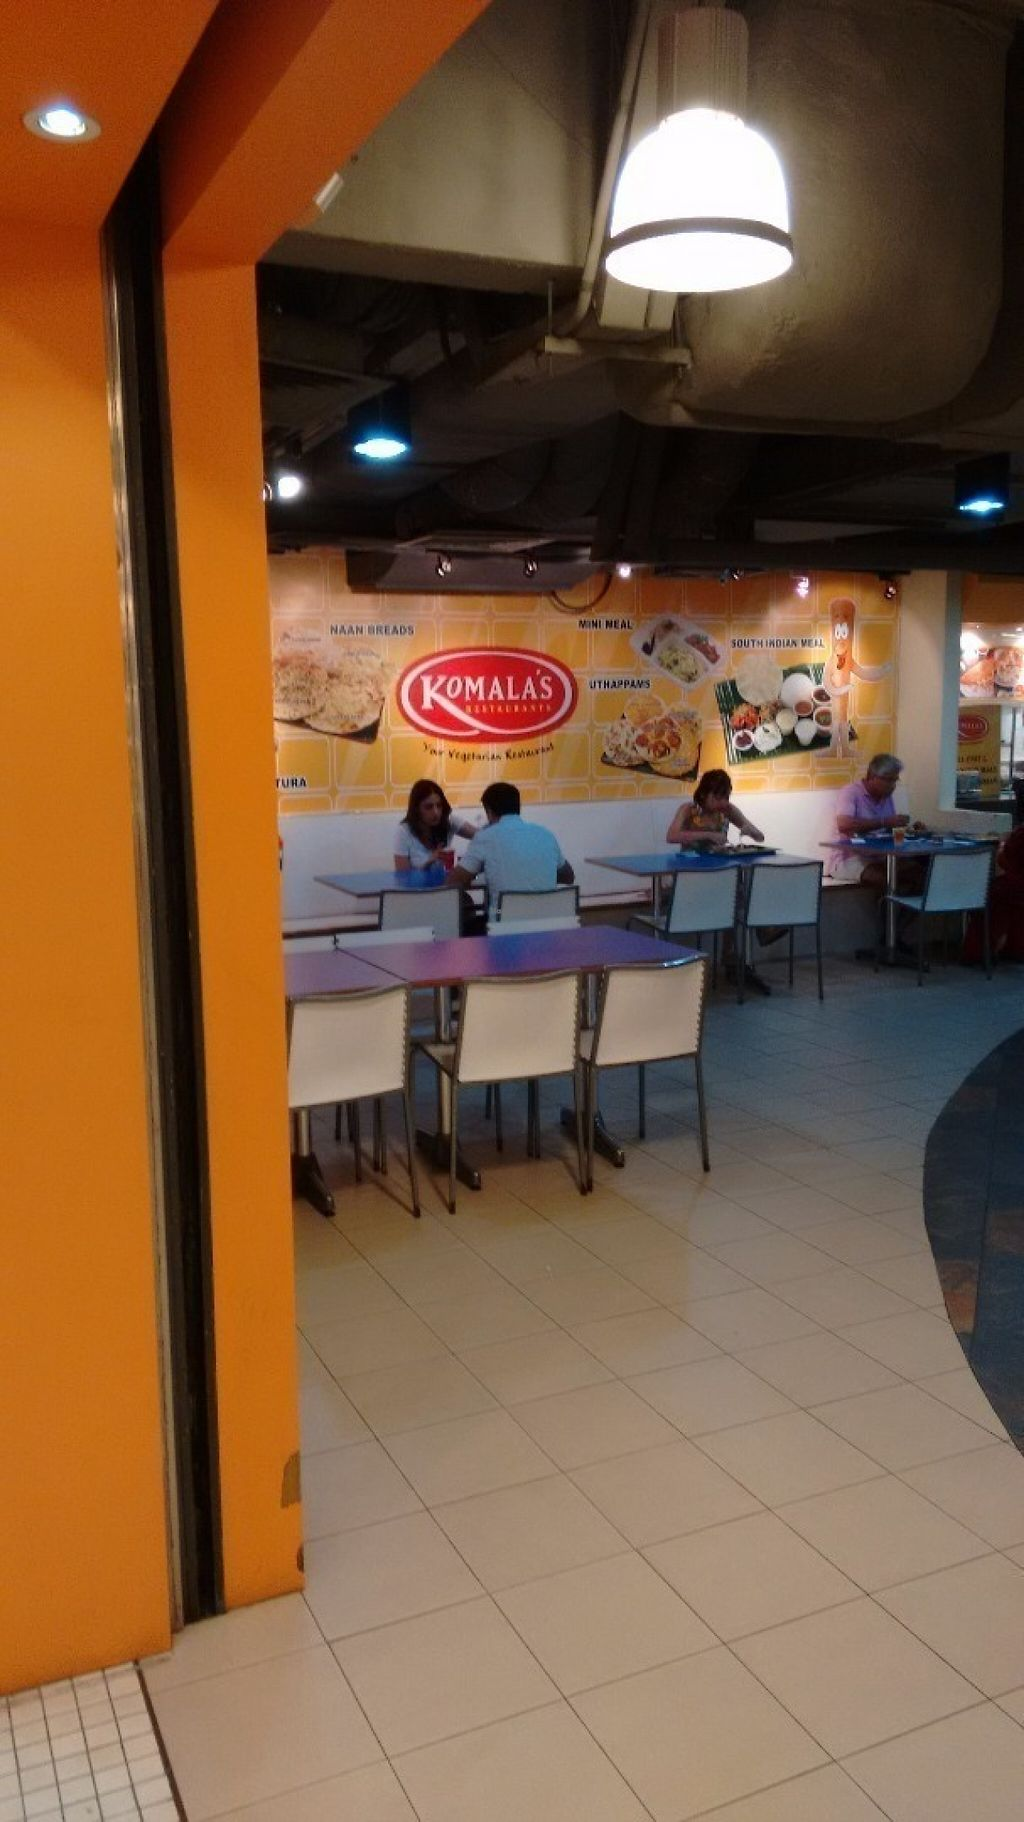 """Photo of Komala's Restaurant - Tanglin Mall  by <a href=""""/members/profile/craigmc"""">craigmc</a> <br/>Right inside the food hall <br/> July 17, 2016  - <a href='/contact/abuse/image/36273/160457'>Report</a>"""